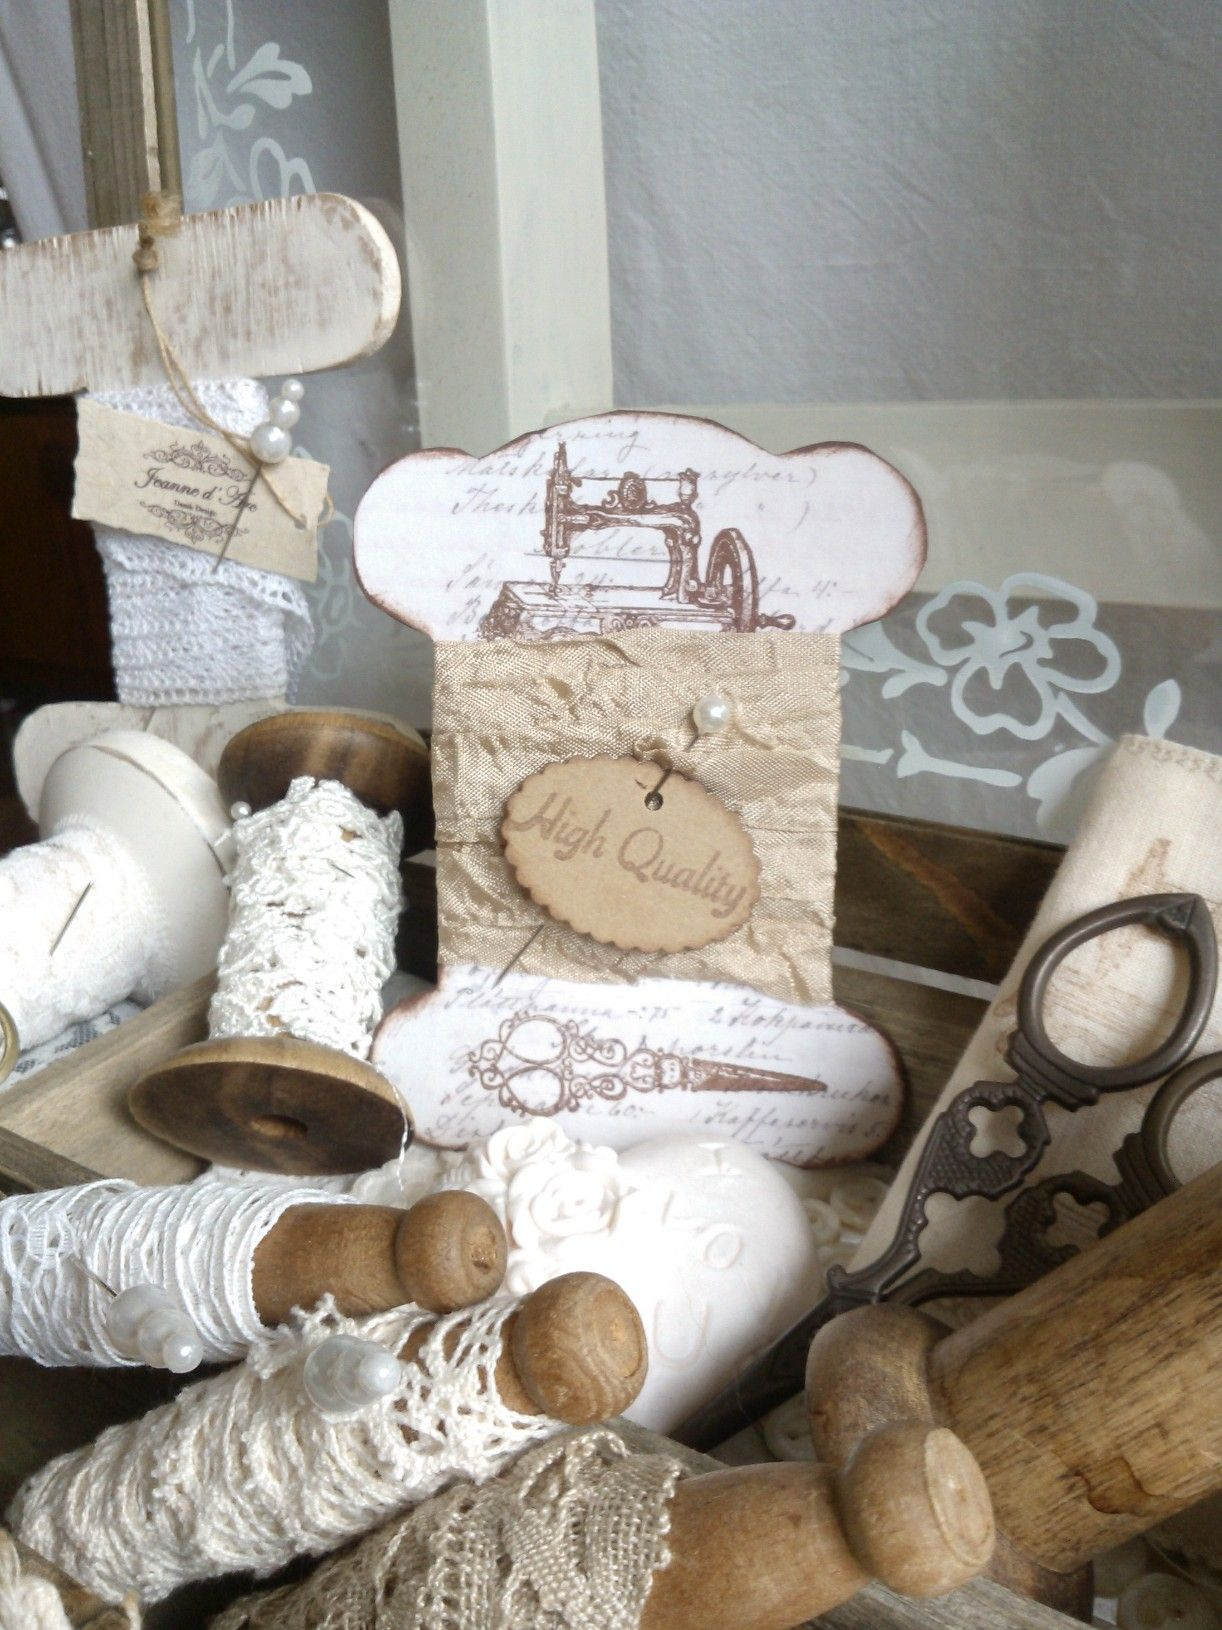 Vintage lace on spools and a thread holder card with sewing drawings.